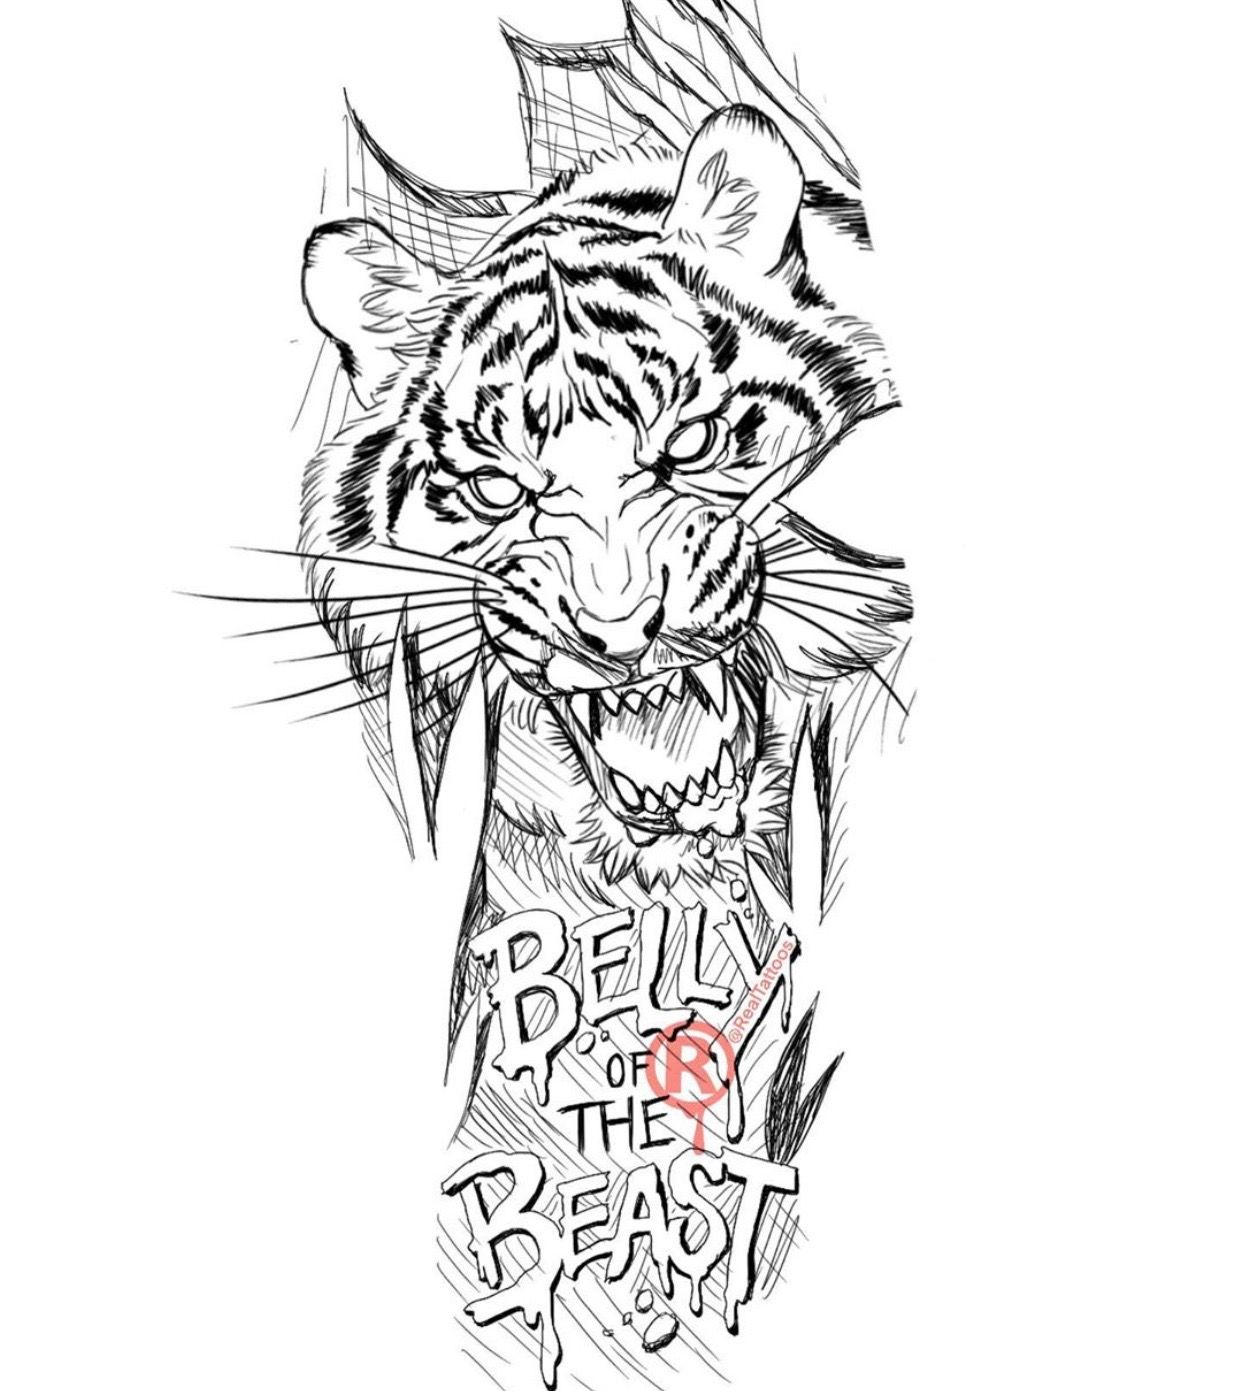 Pin By Inkk By Gee On Dude Tatts Chest Tattoo Drawings Sleeve Tattoos Tattoo Designs Men